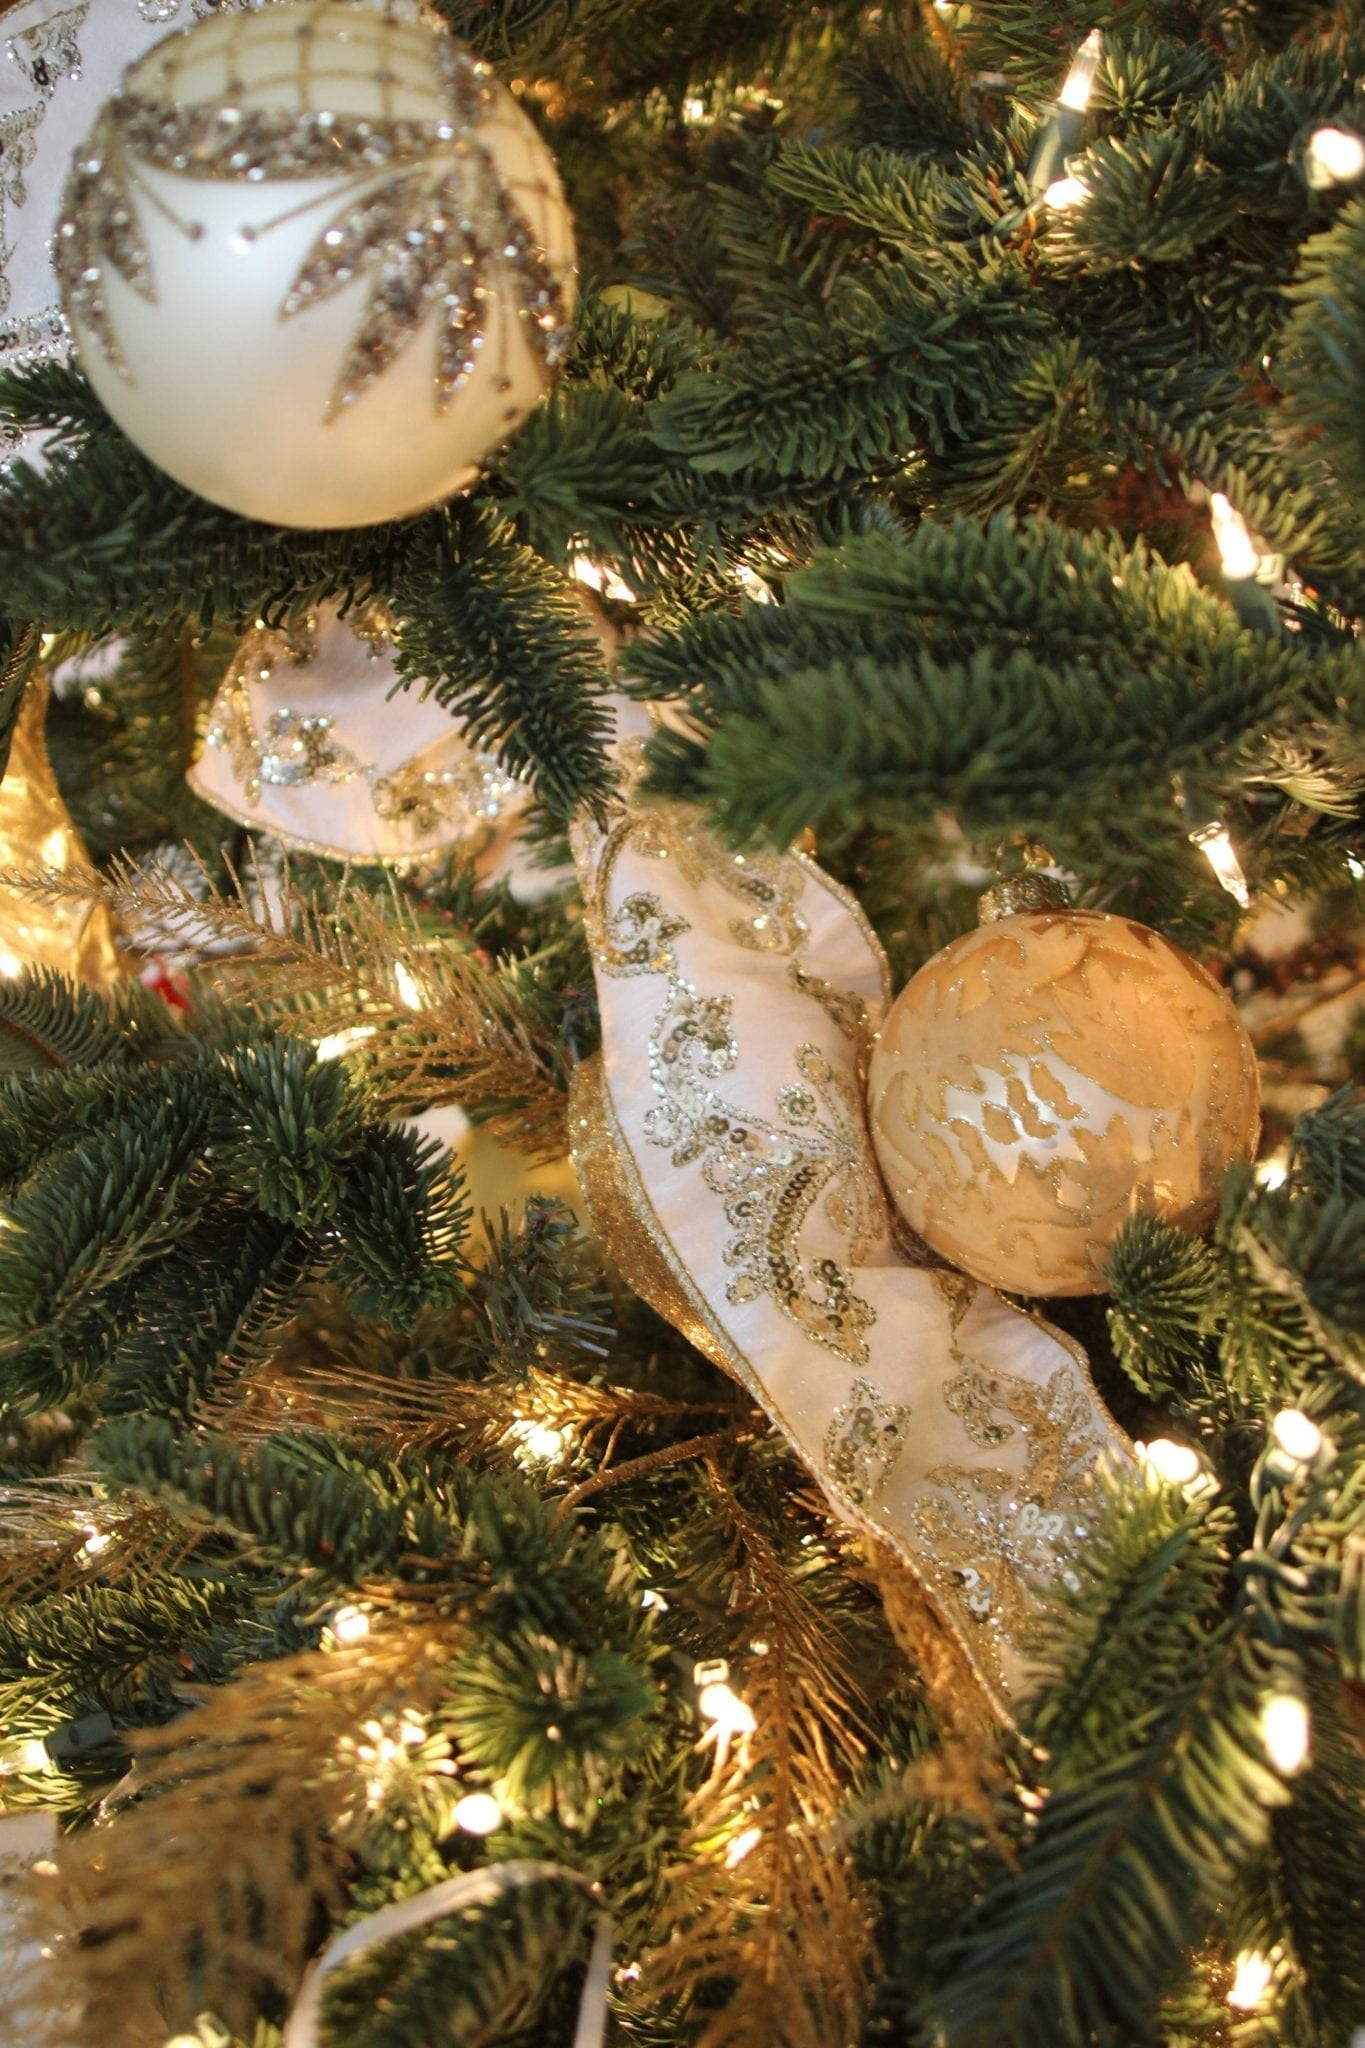 Christmas ribbon used in a Christmas tree with white and gold ornaments.